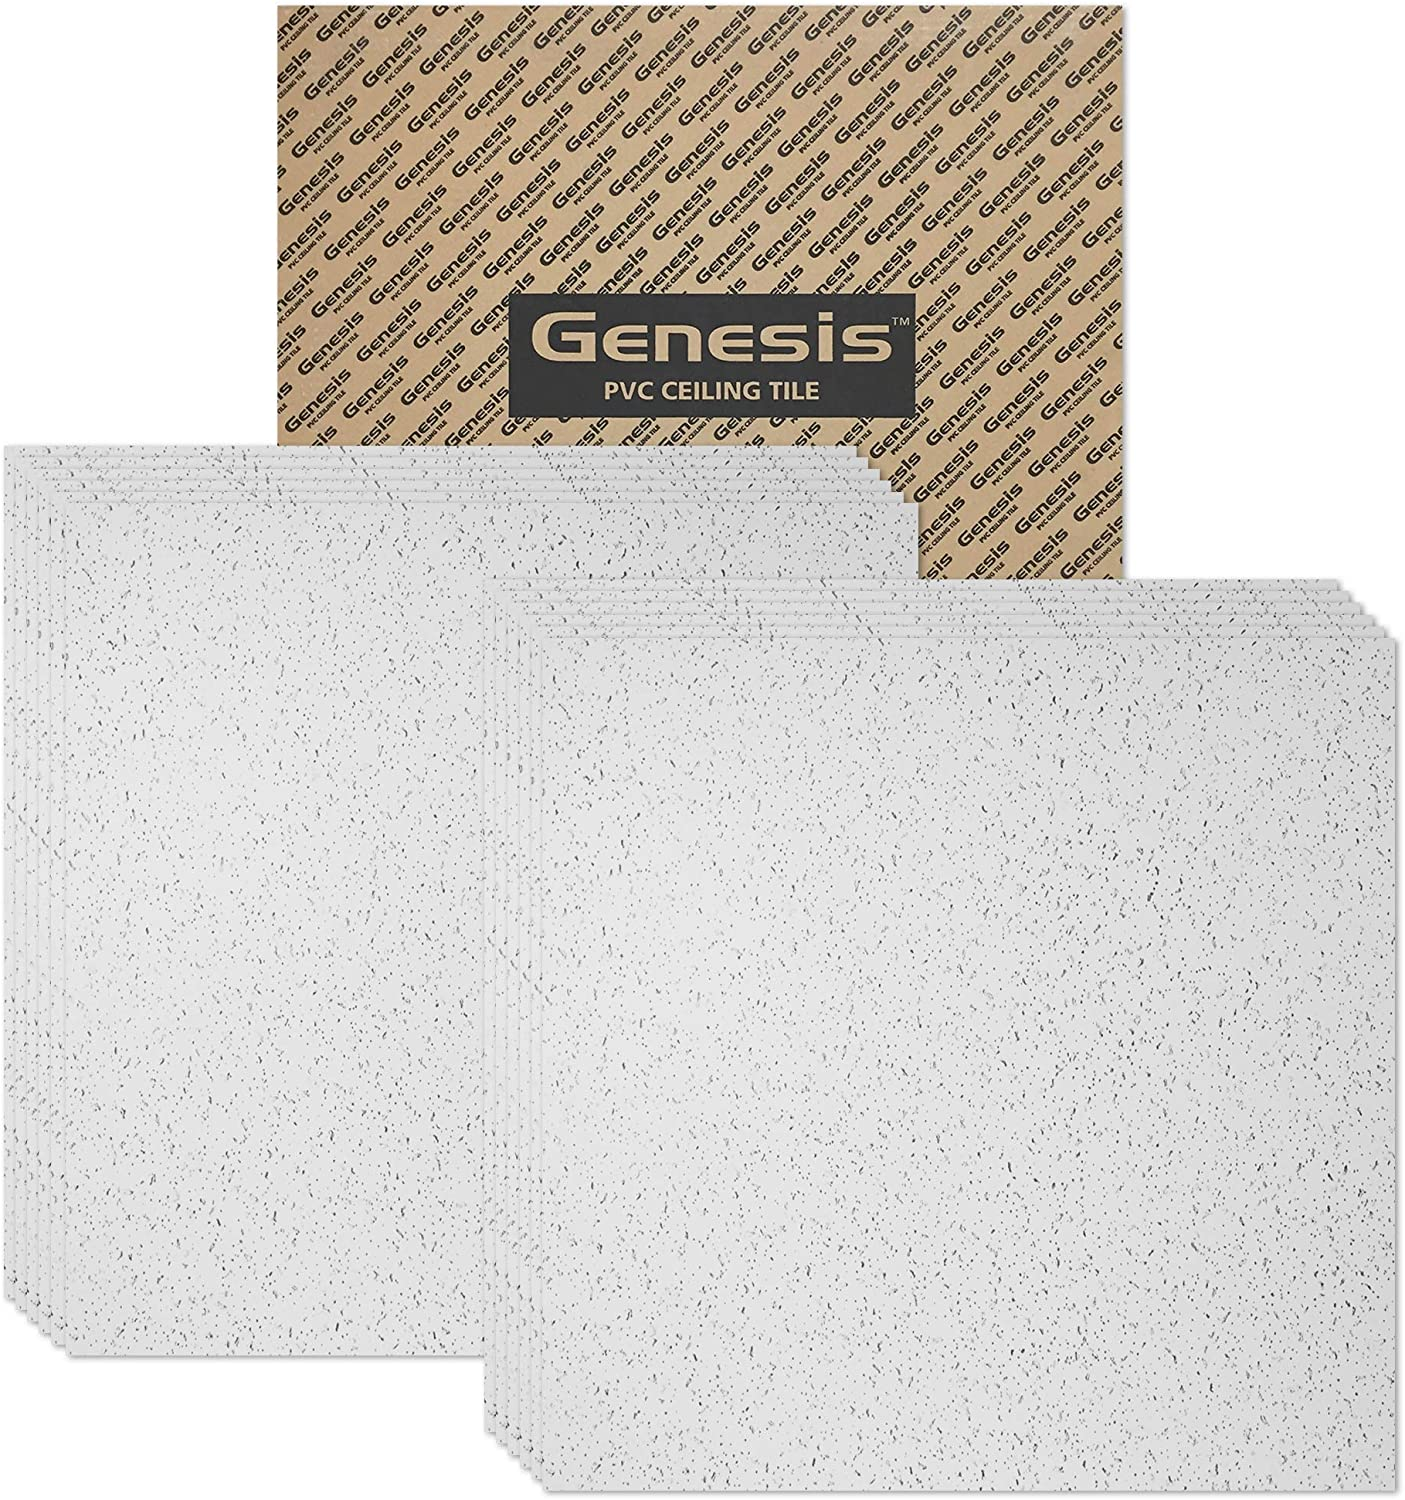 Genesis 2ft x 2ft Printed Pro Ceiling Tiles - Easy Drop-in Installation – Waterproof, Washable and Fire-Rated - High-Grade PVC to Prevent Breakage - Package of 12 Tiles